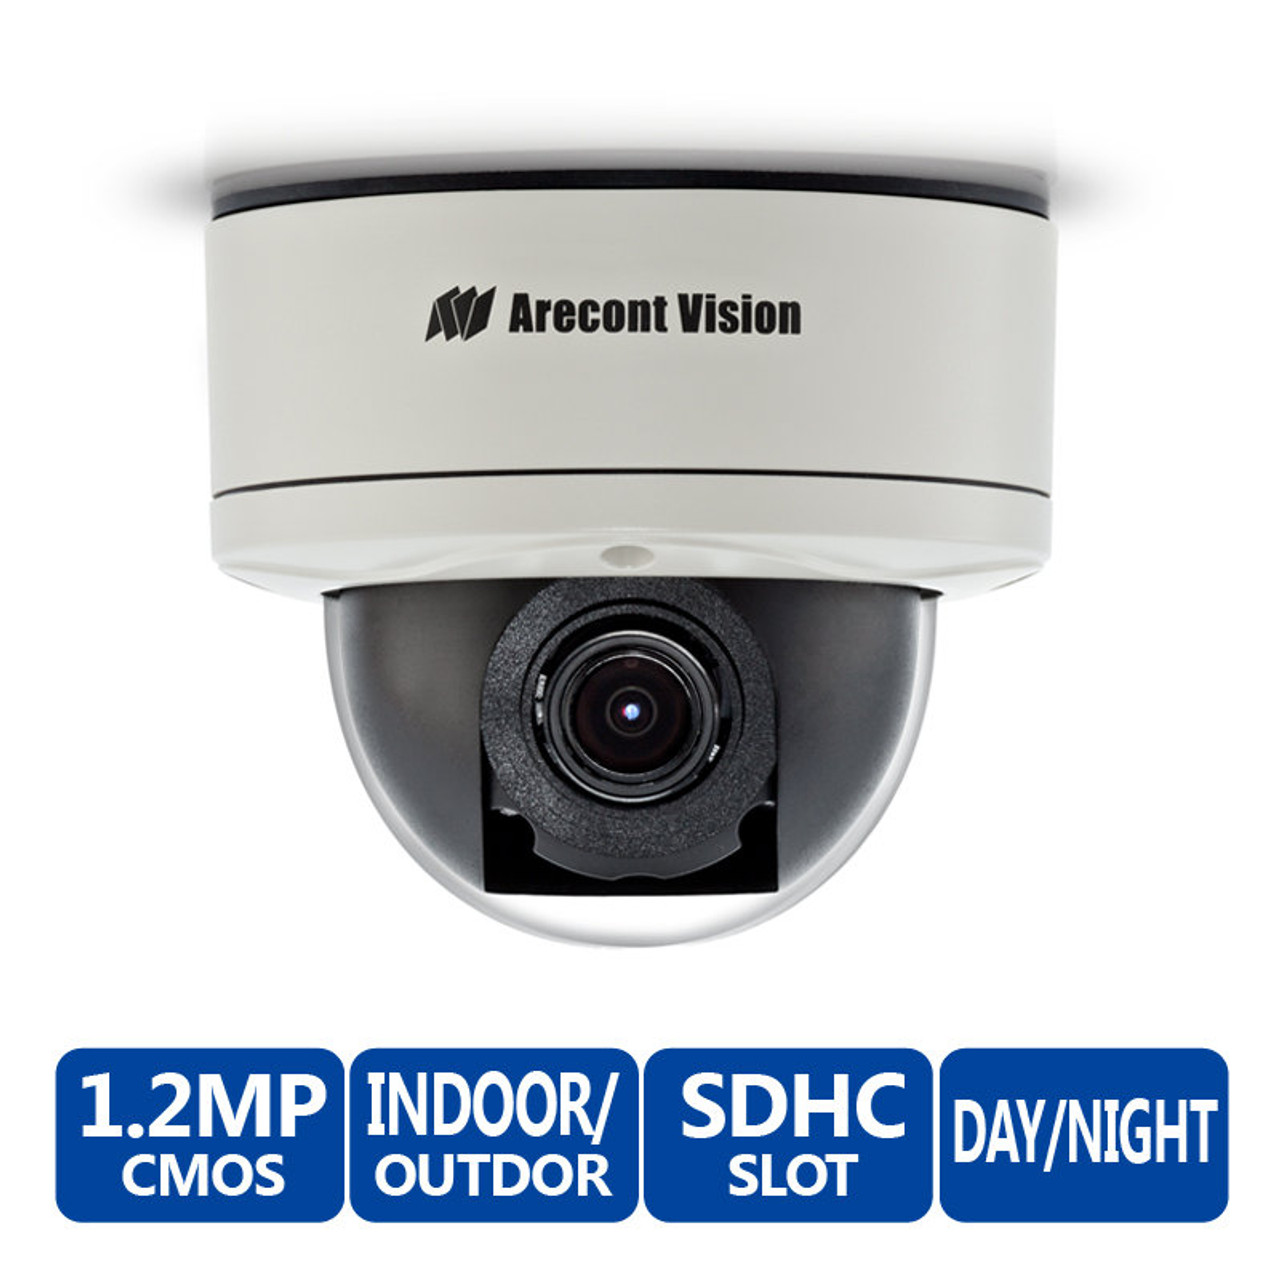 ARECONT VISION AV1255PM-S IP CAMERA DOWNLOAD DRIVER